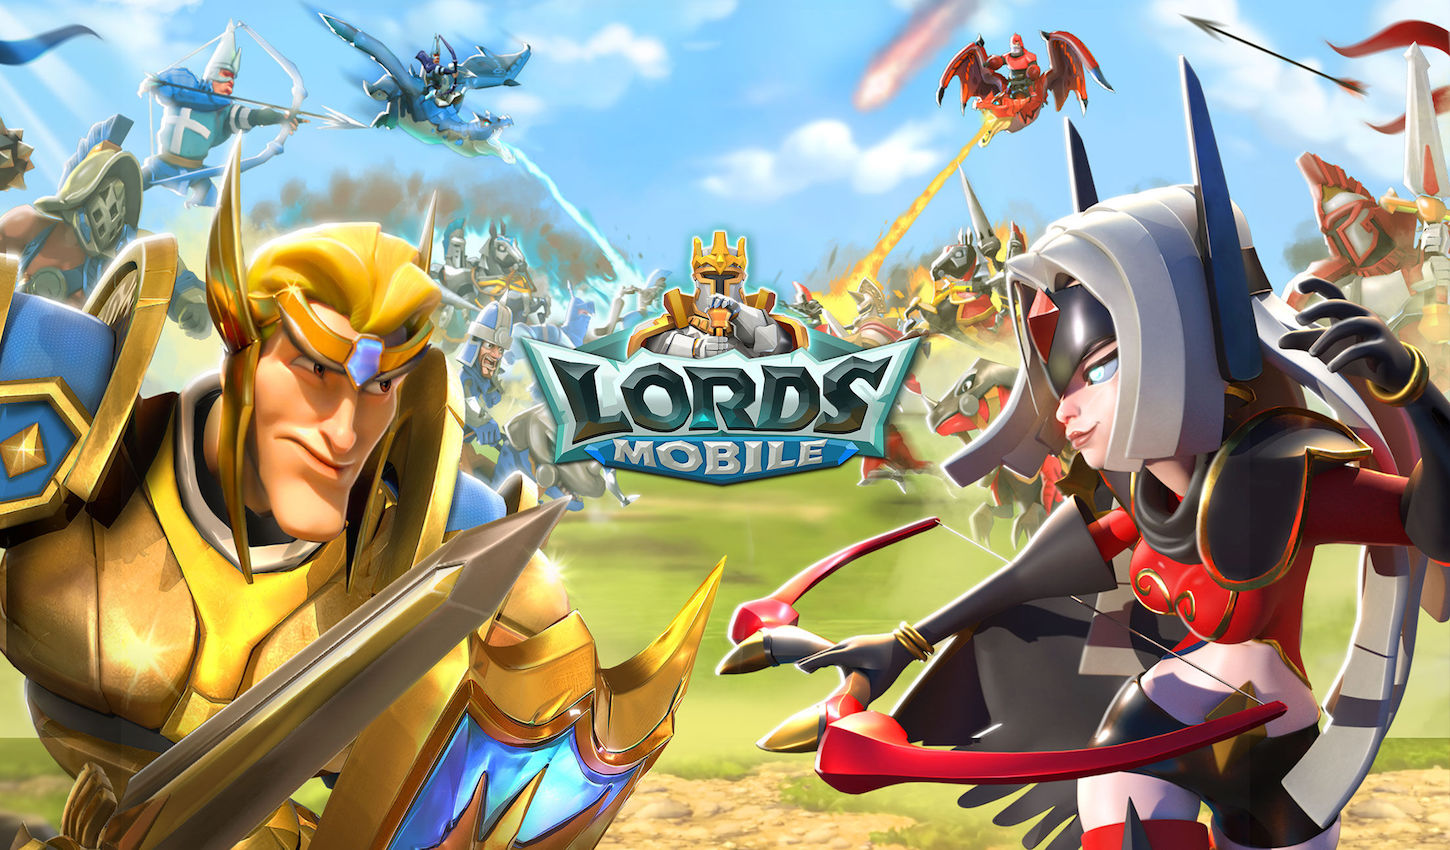 IGG's Lords Mobile Revenue Rallies Past $825 million